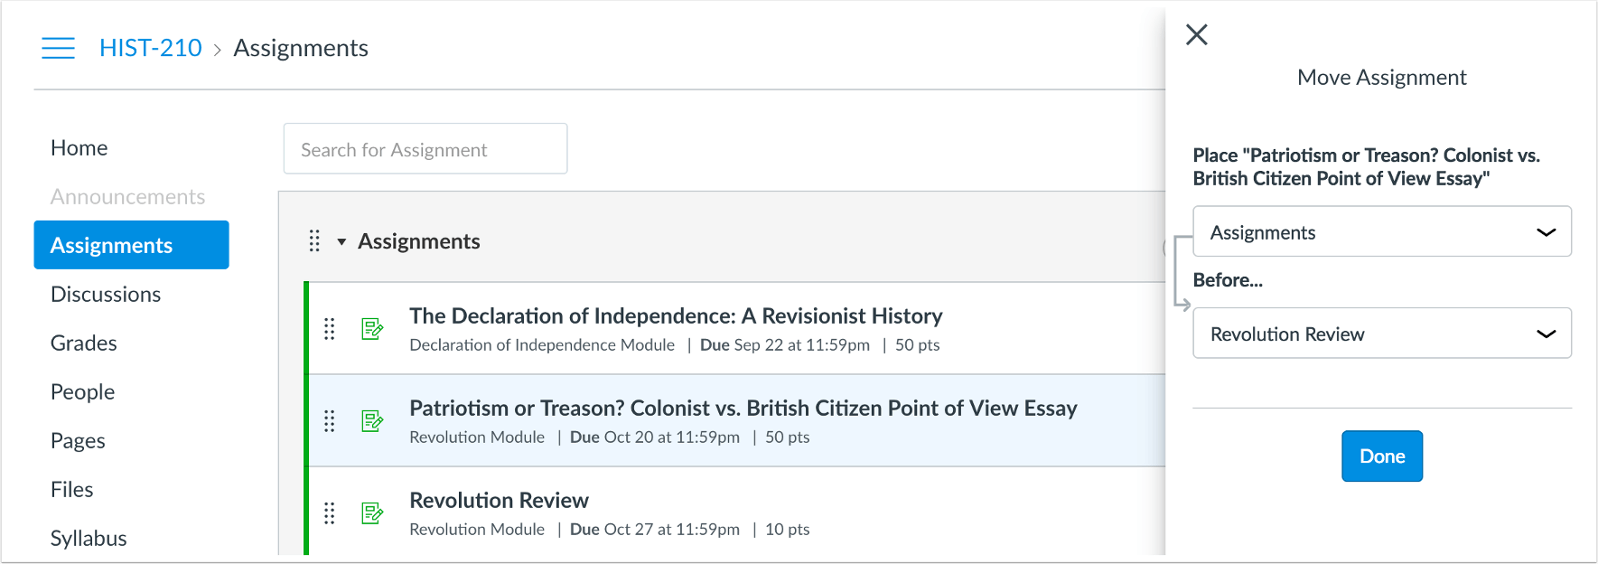 picture showing assignments move to page